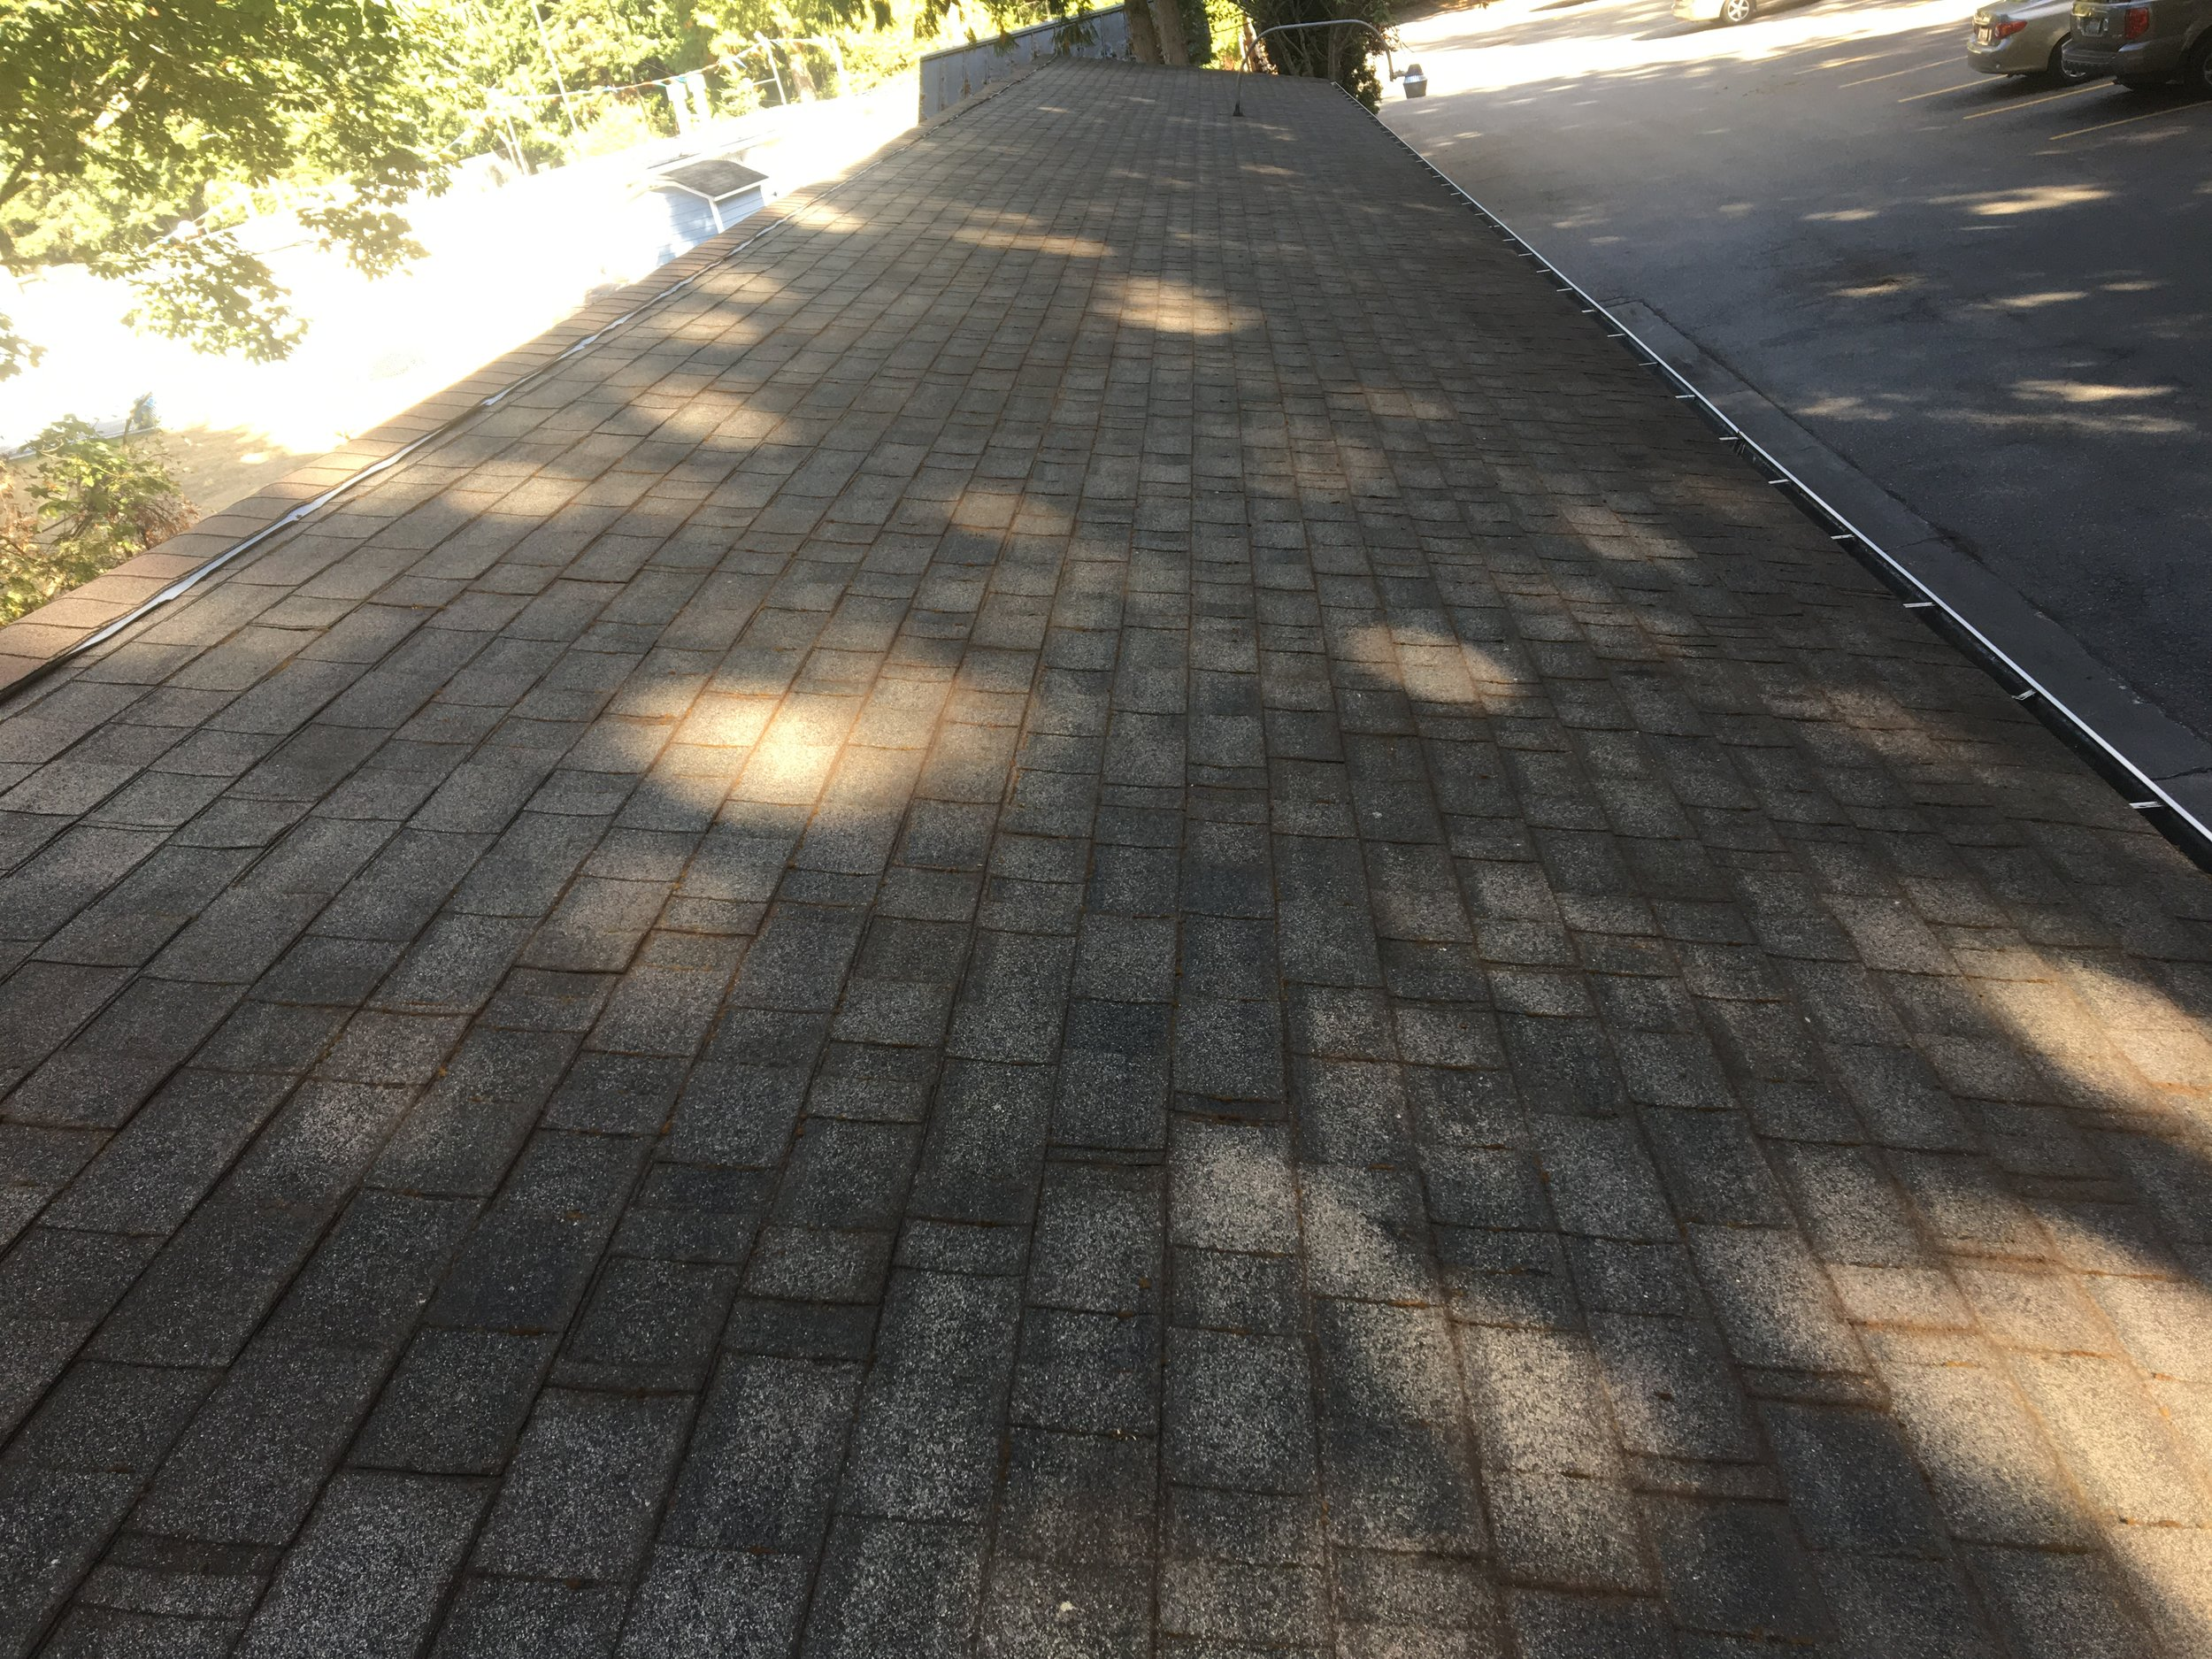 roof_6_after.JPG